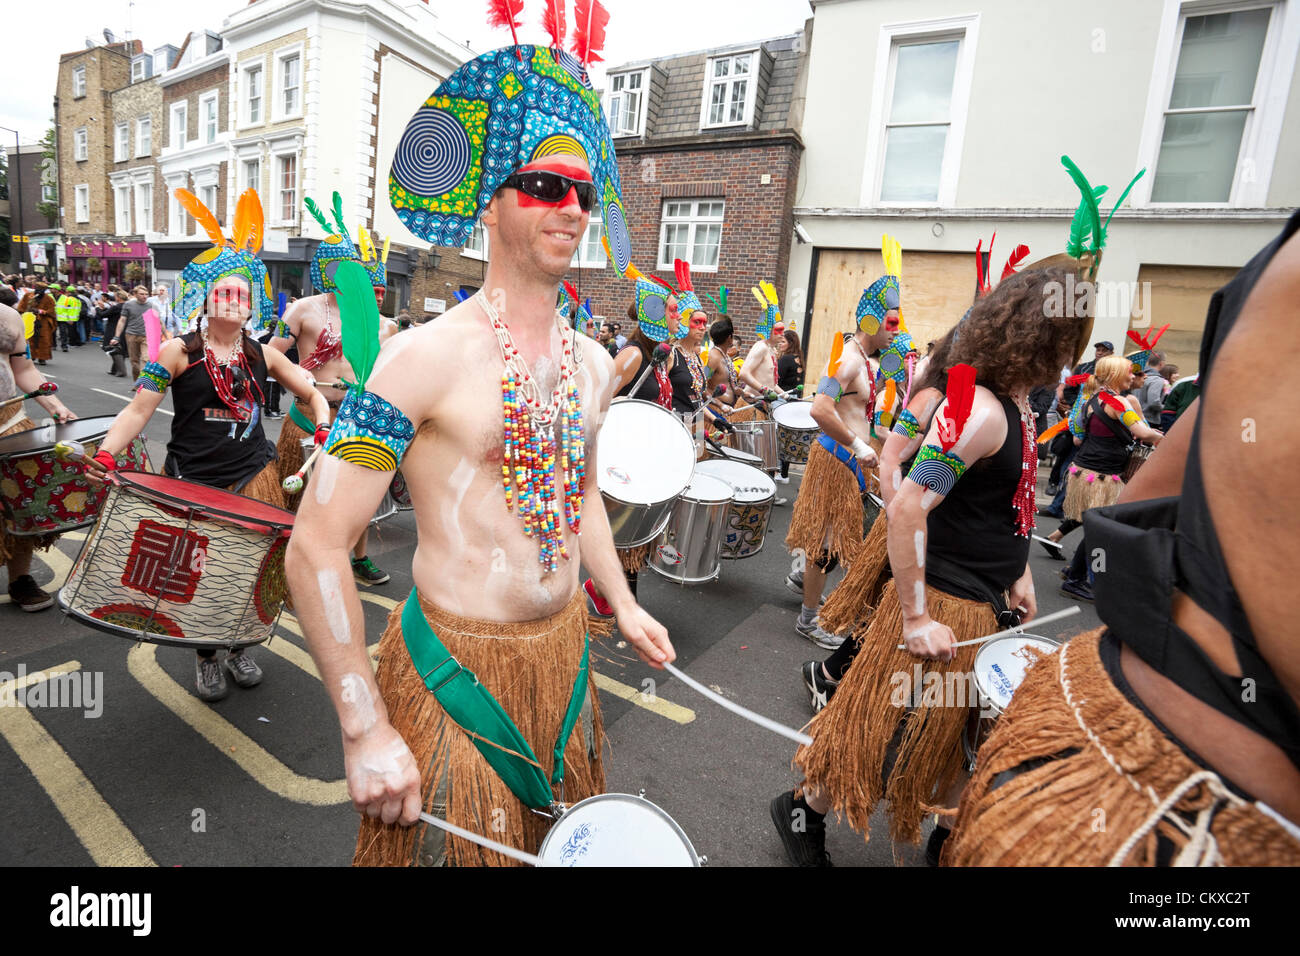 August 27th, 2012, London, UK. Notting Hill Carnival drummers perform in colourful costumes. - Stock Image